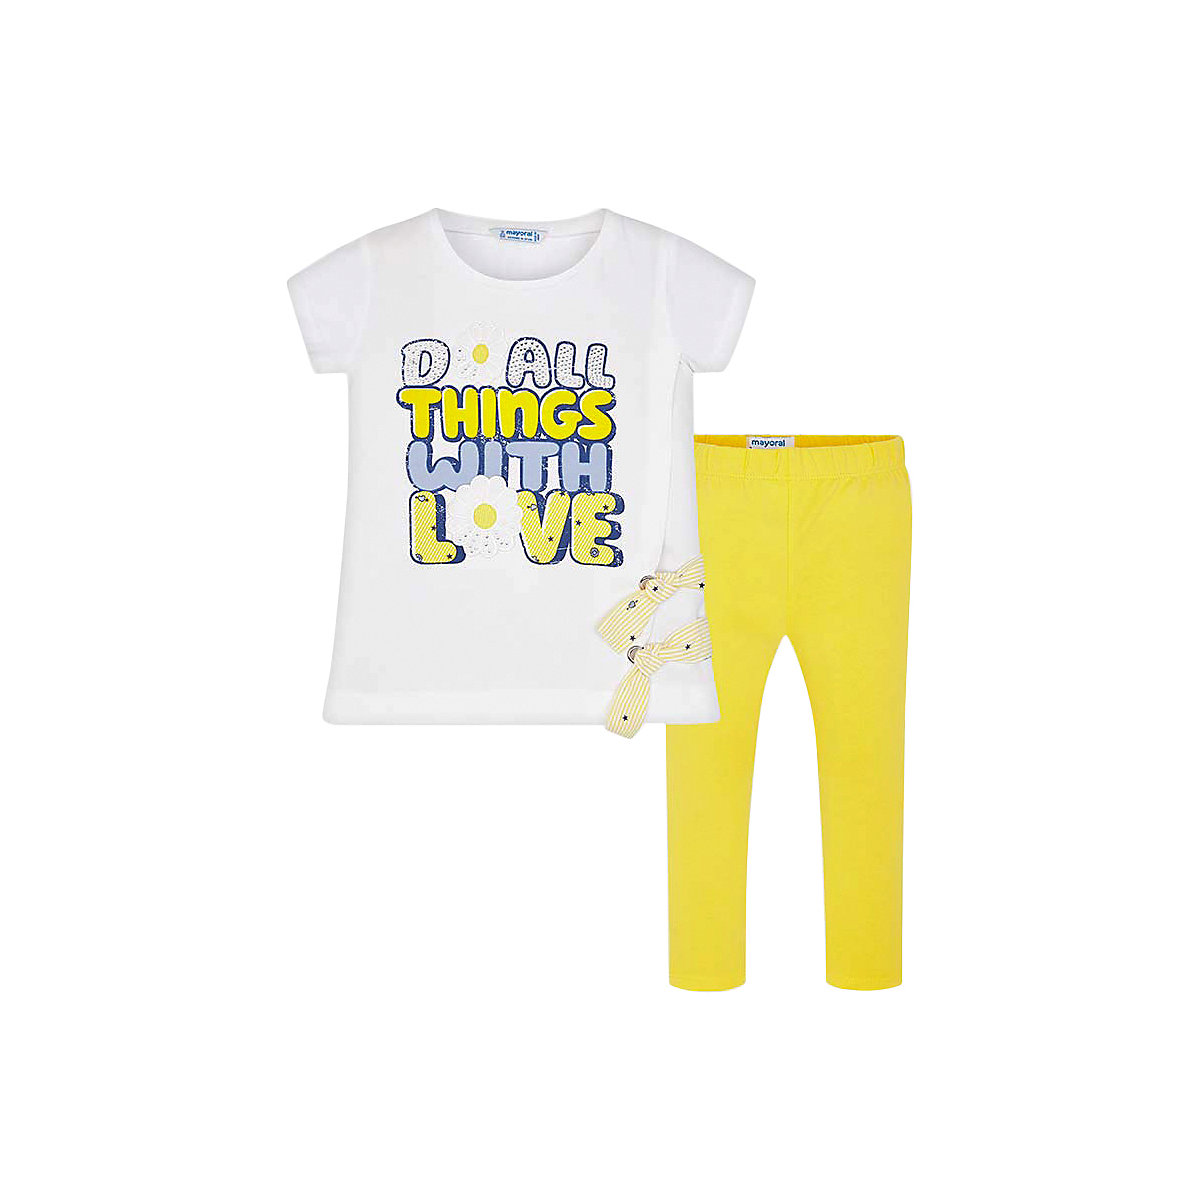 Baby's Sets MAYORAL 10688178 Set Of Clothes For Kids T-shirt Legs Shirt Shorts Girls And Boys